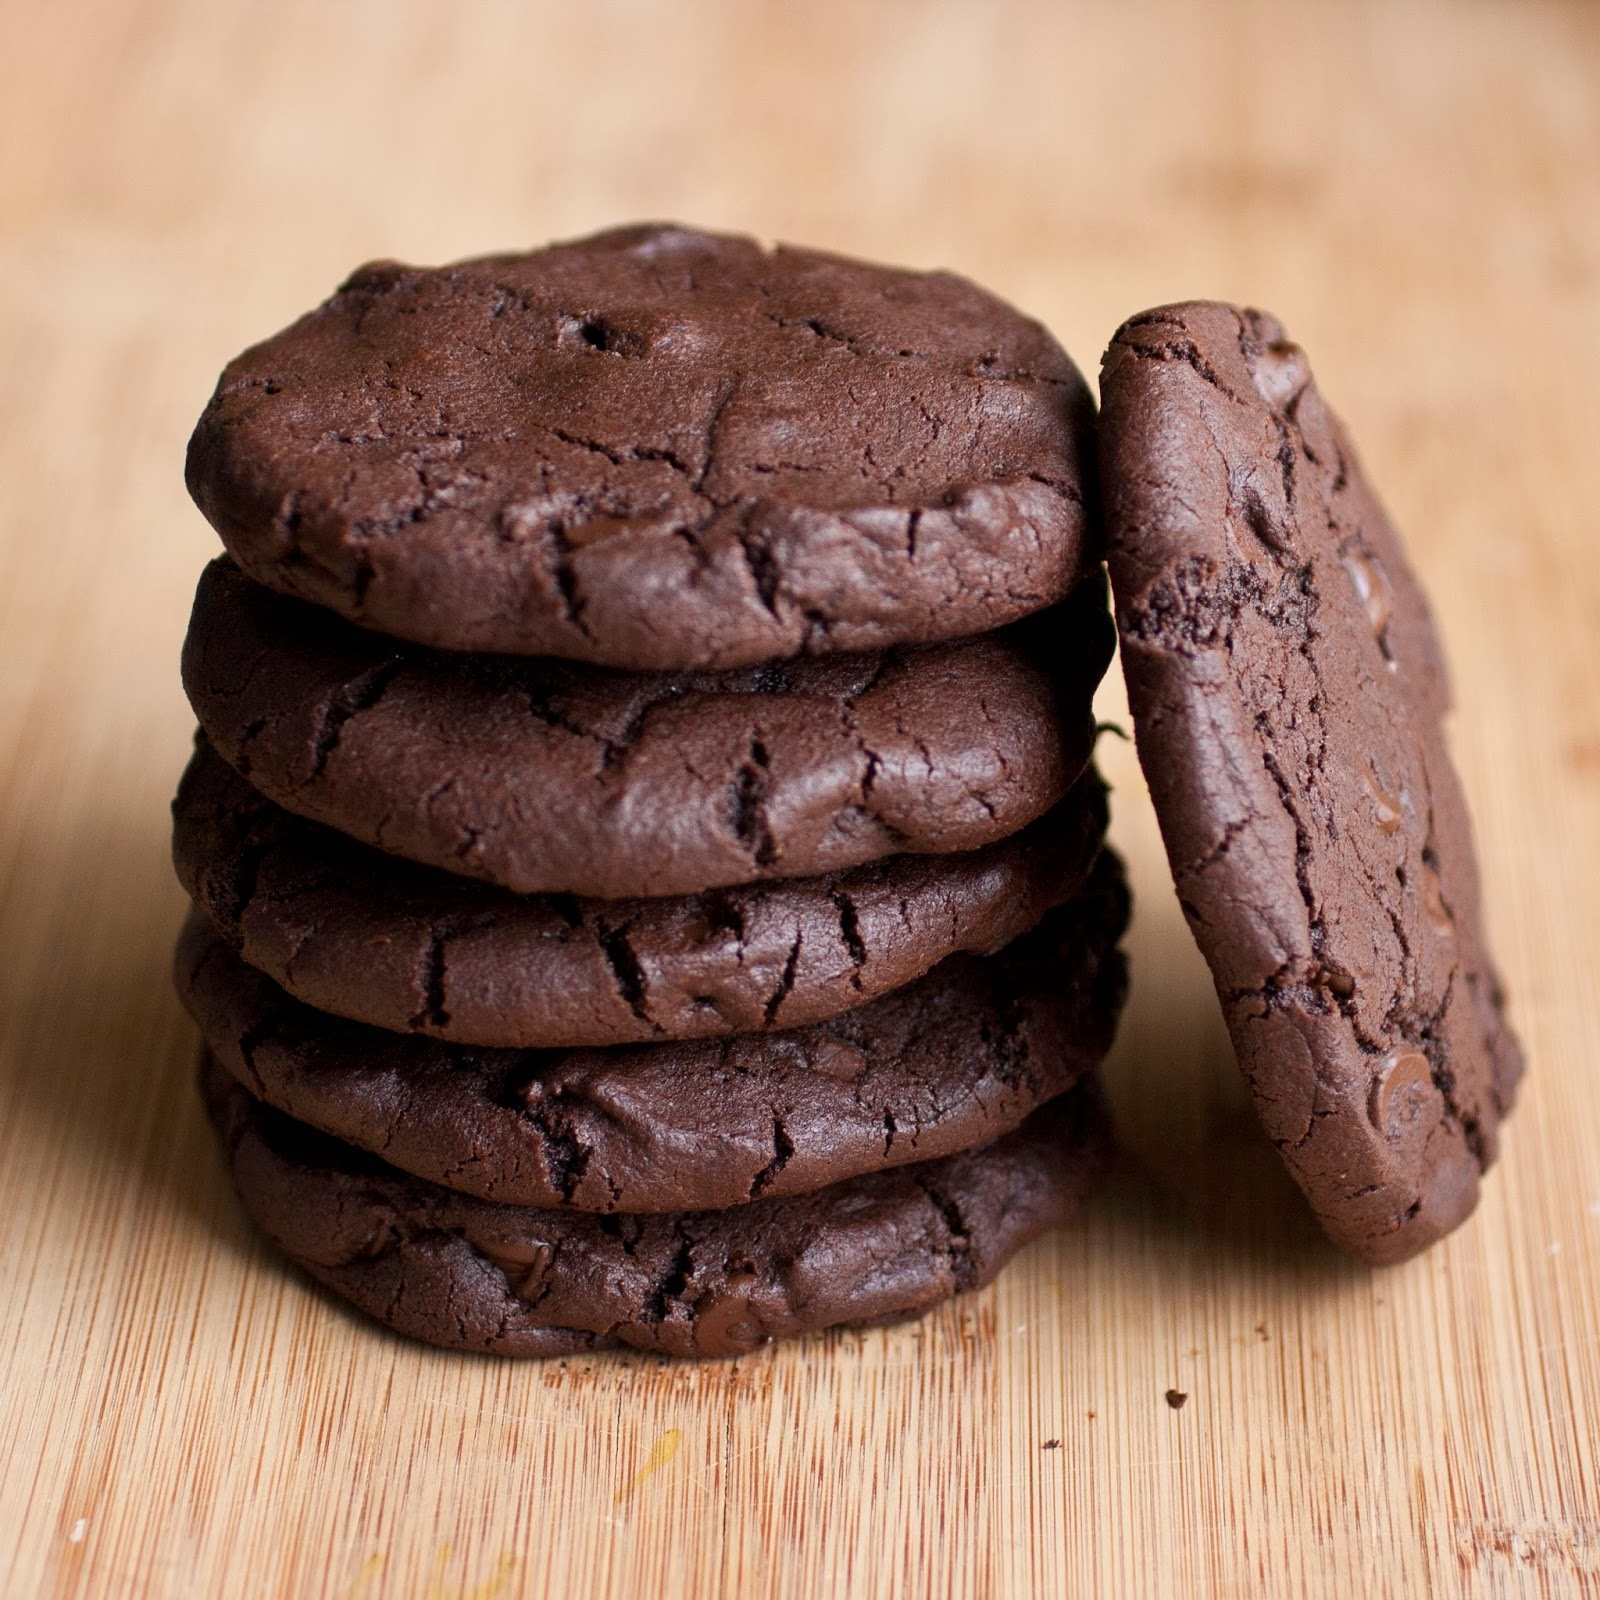 ... cookies with dark chocolate toffee cookies with dark chocolate glaze